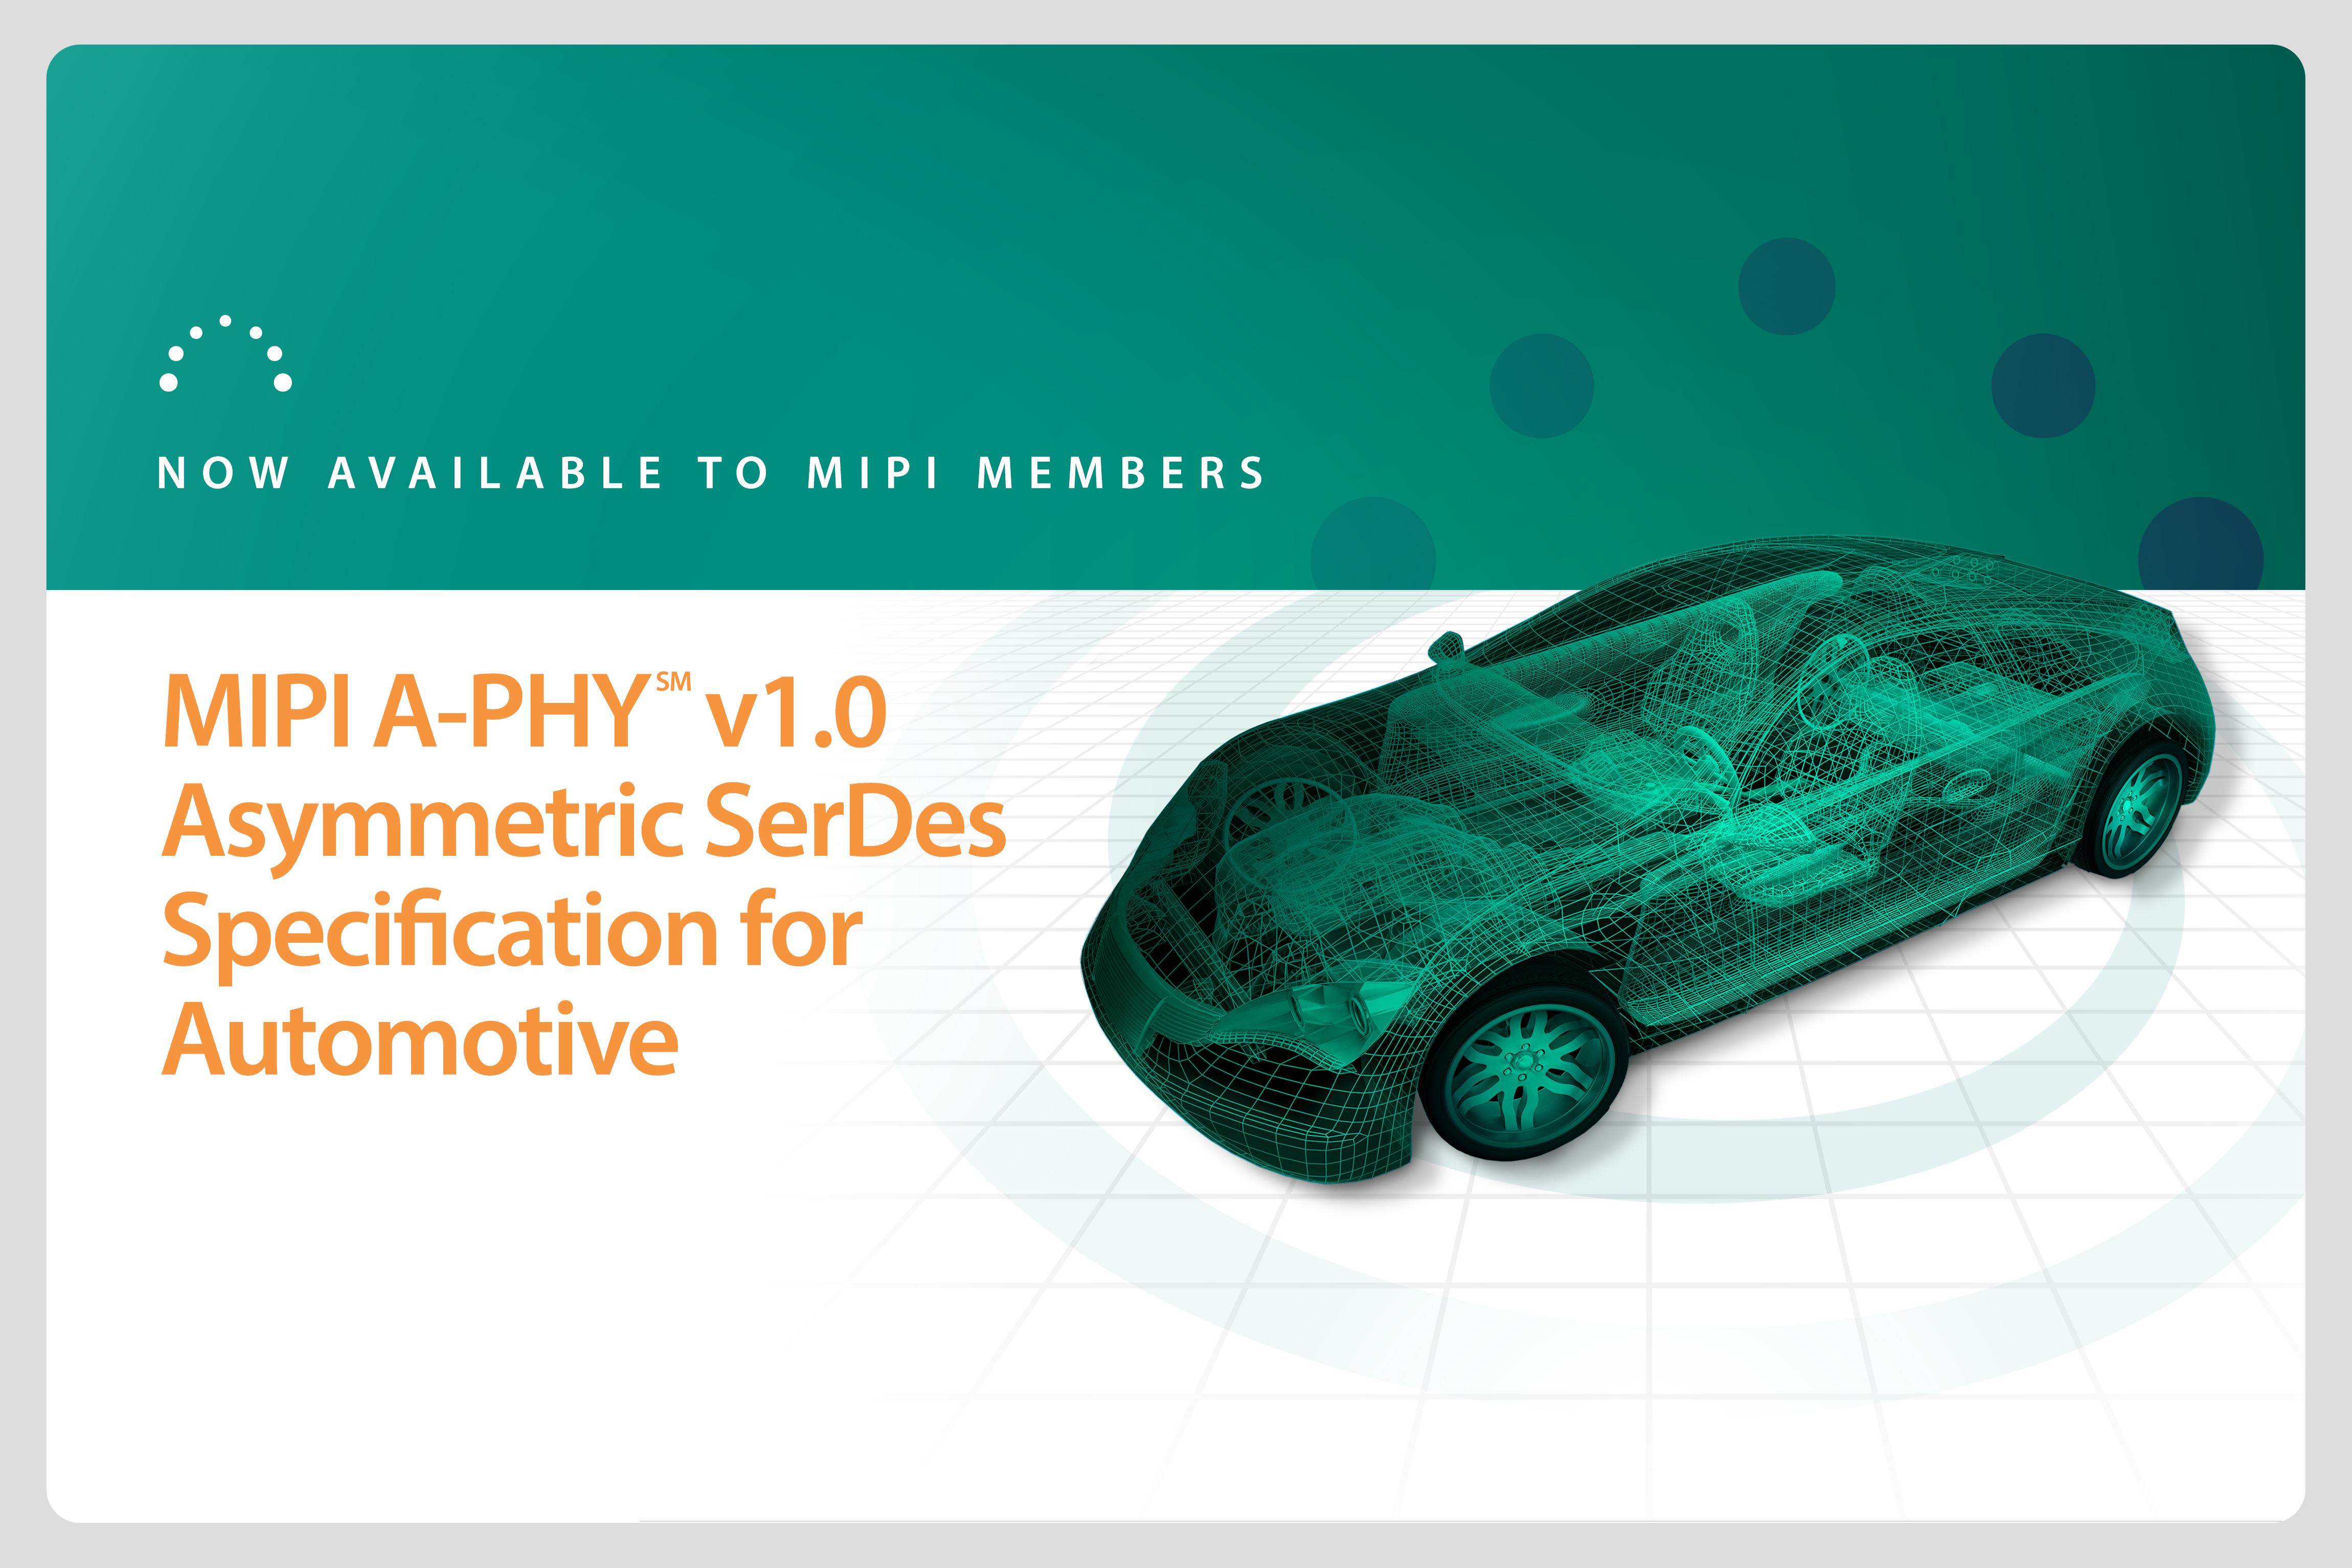 MIPI A-PHY now available to members